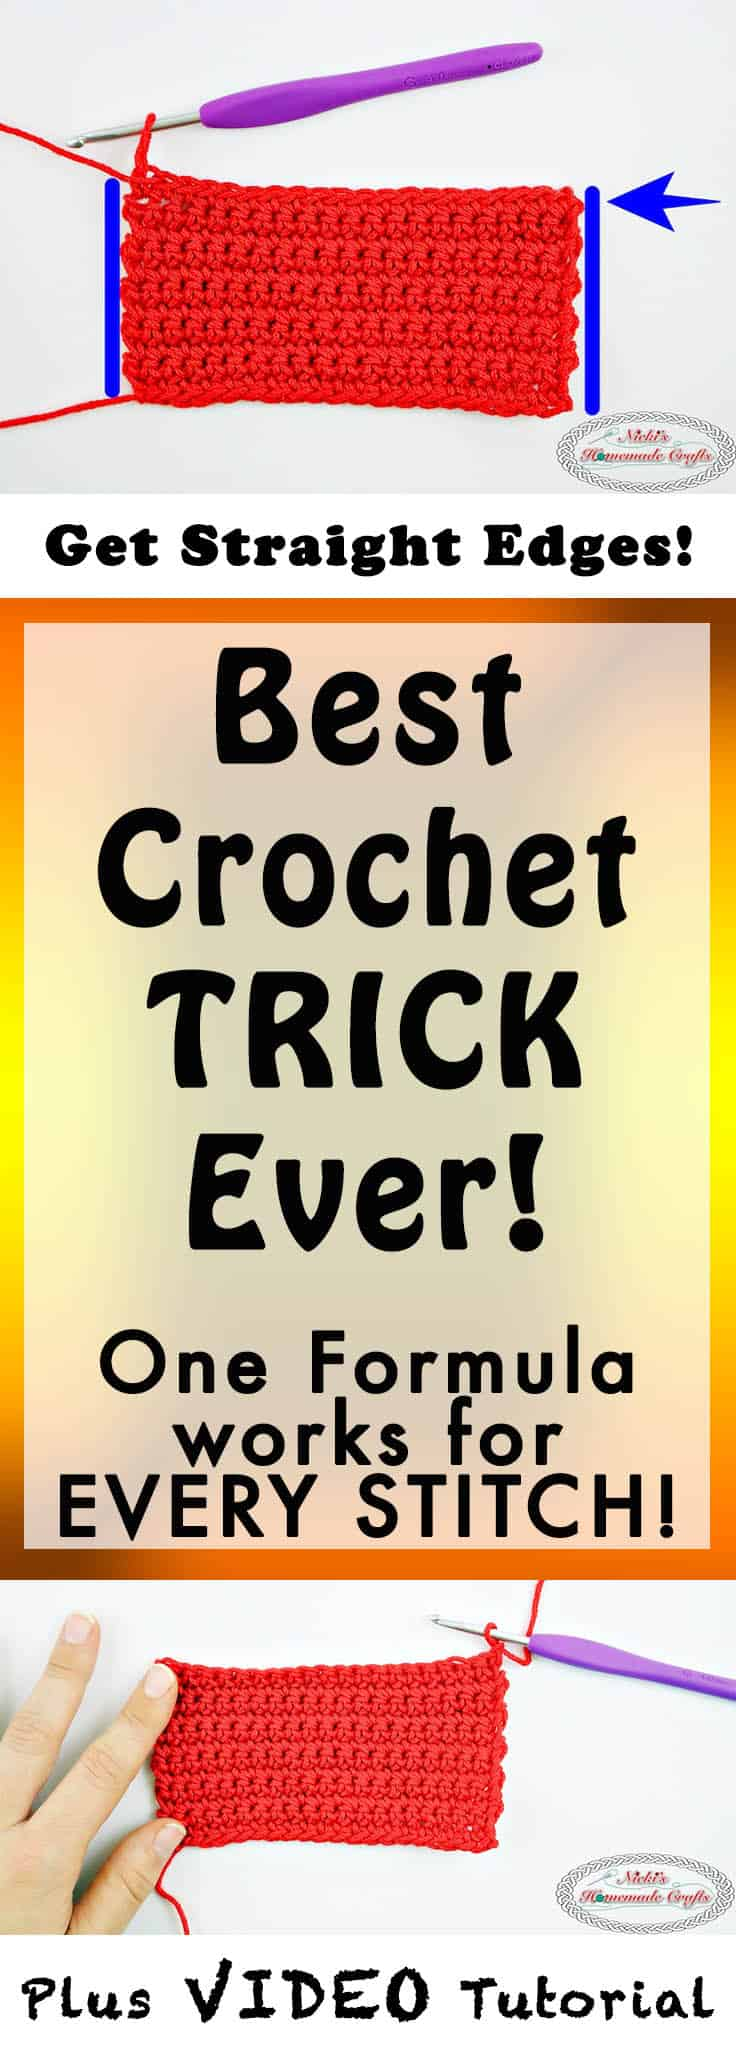 Best Crochet Trick Ever for Crochet Straight Edges in Rows Every Time